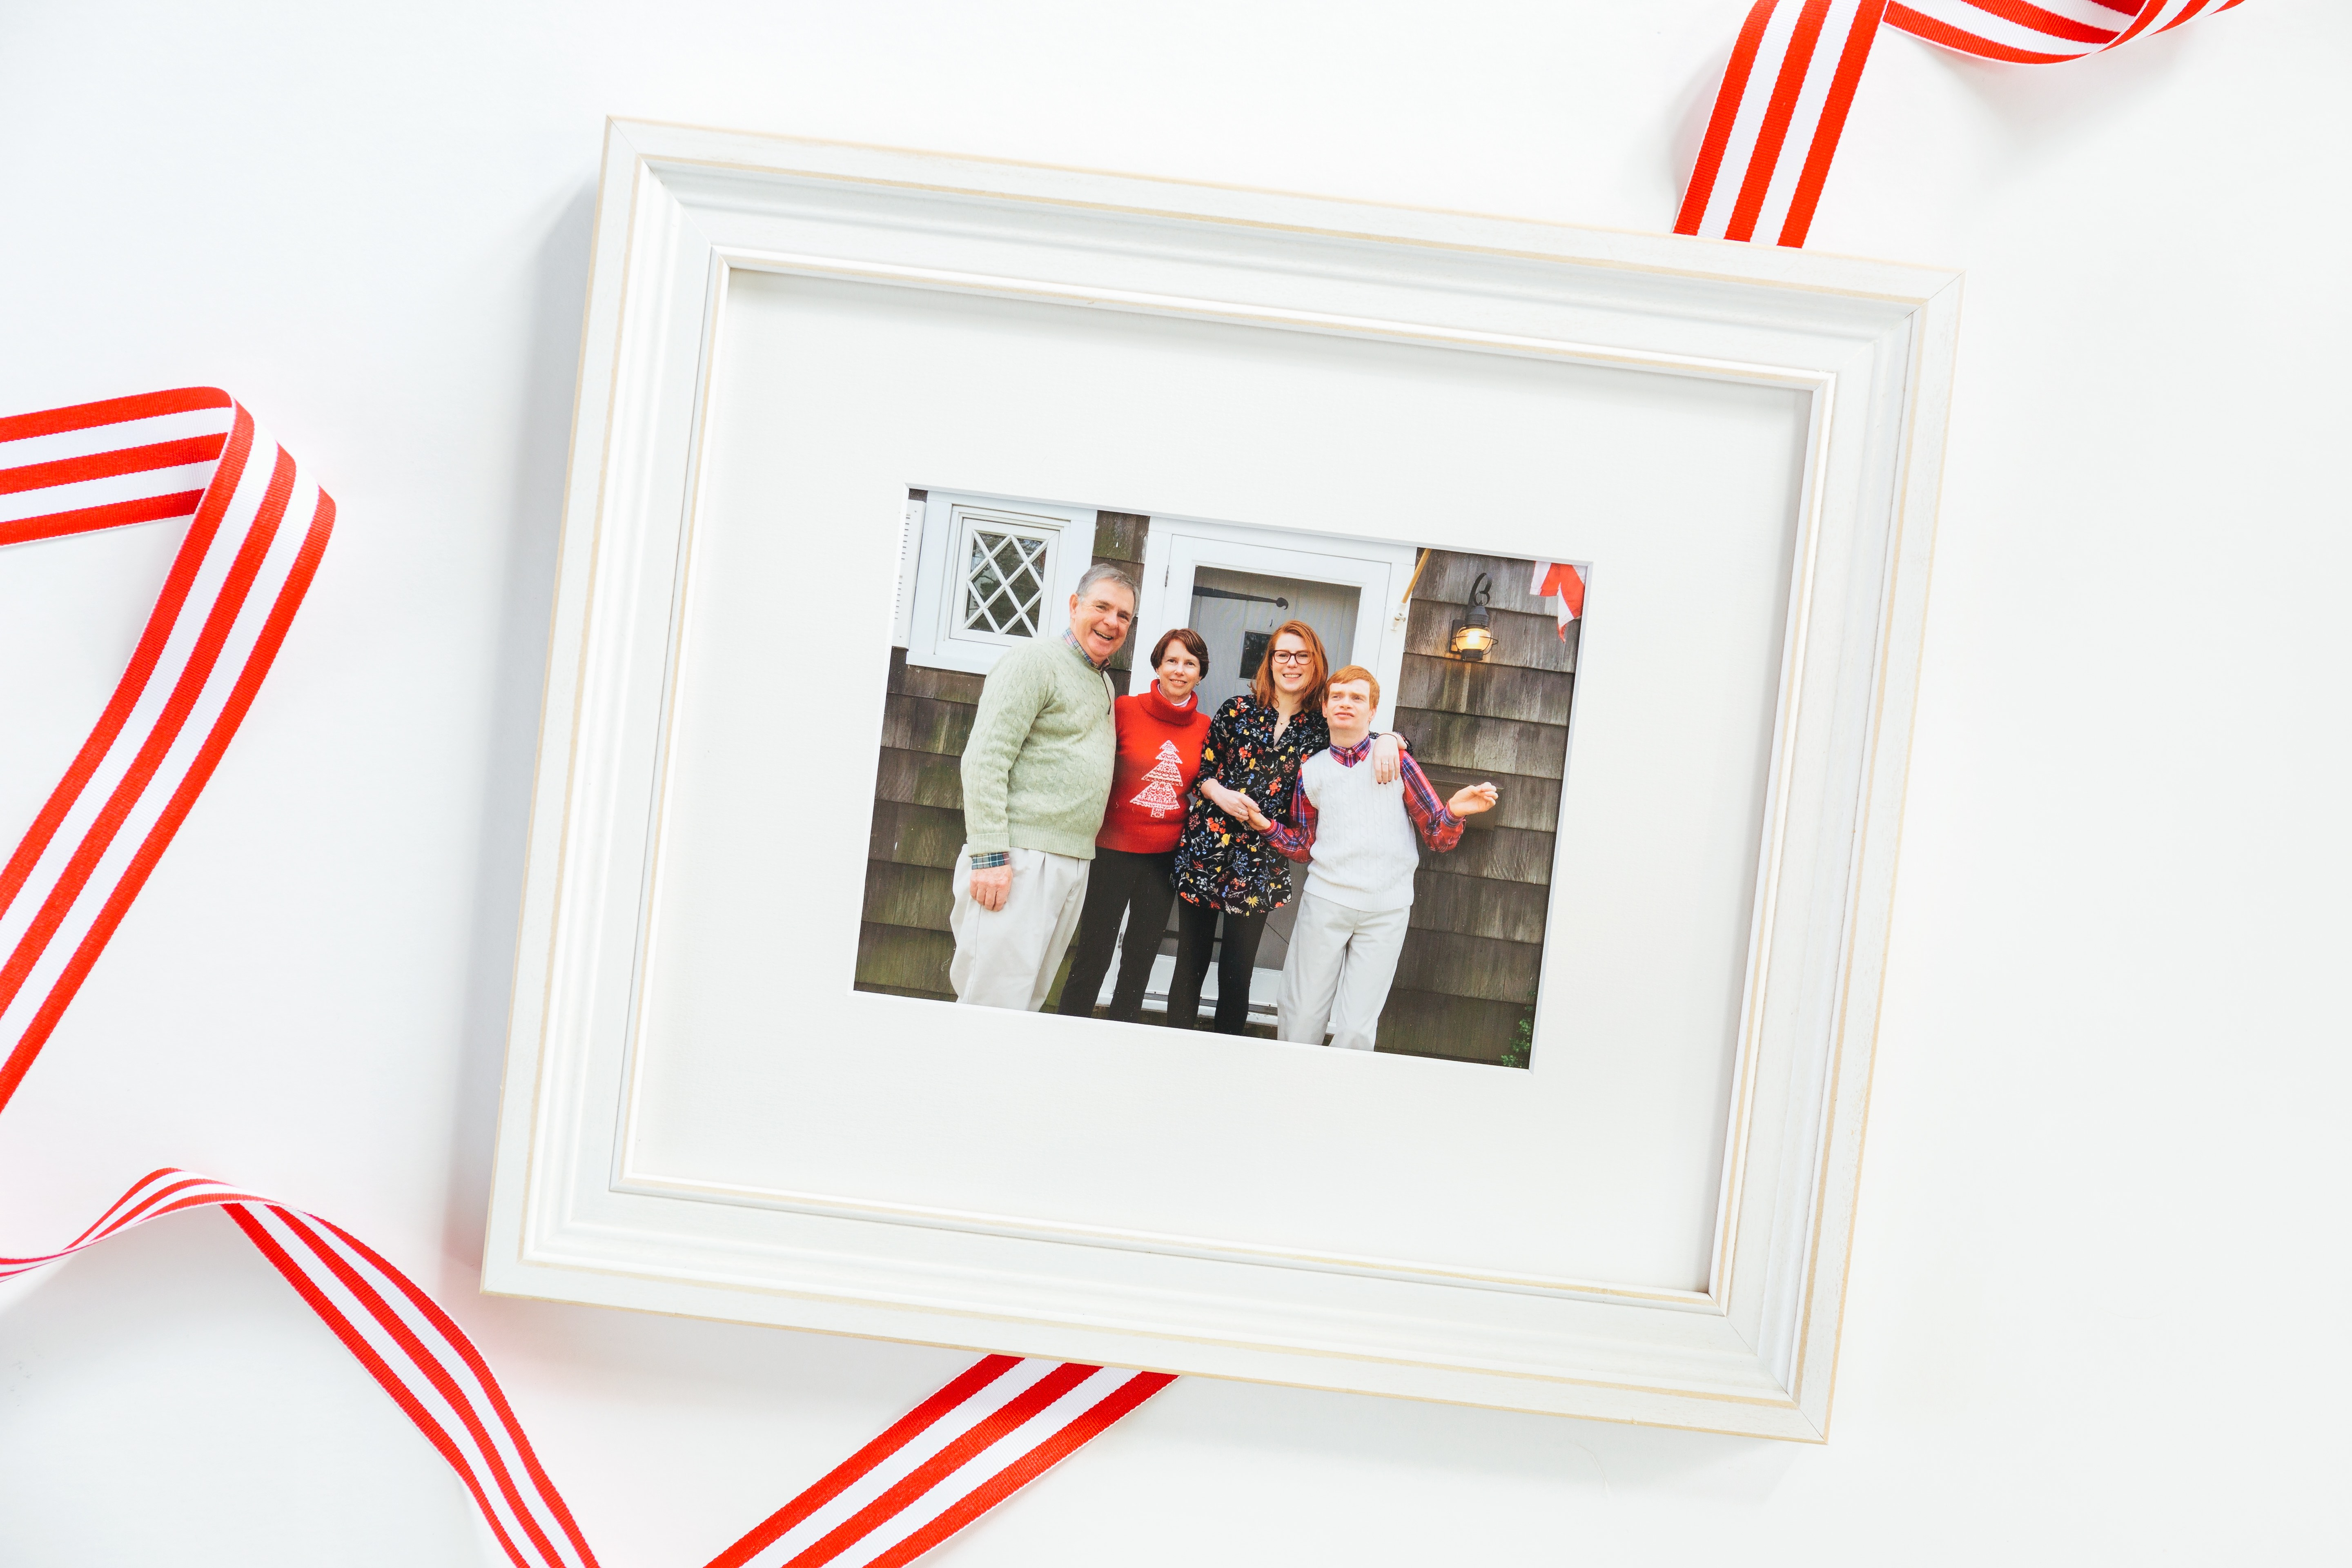 framed photo of a family during Christmas in while frame with red ribbon